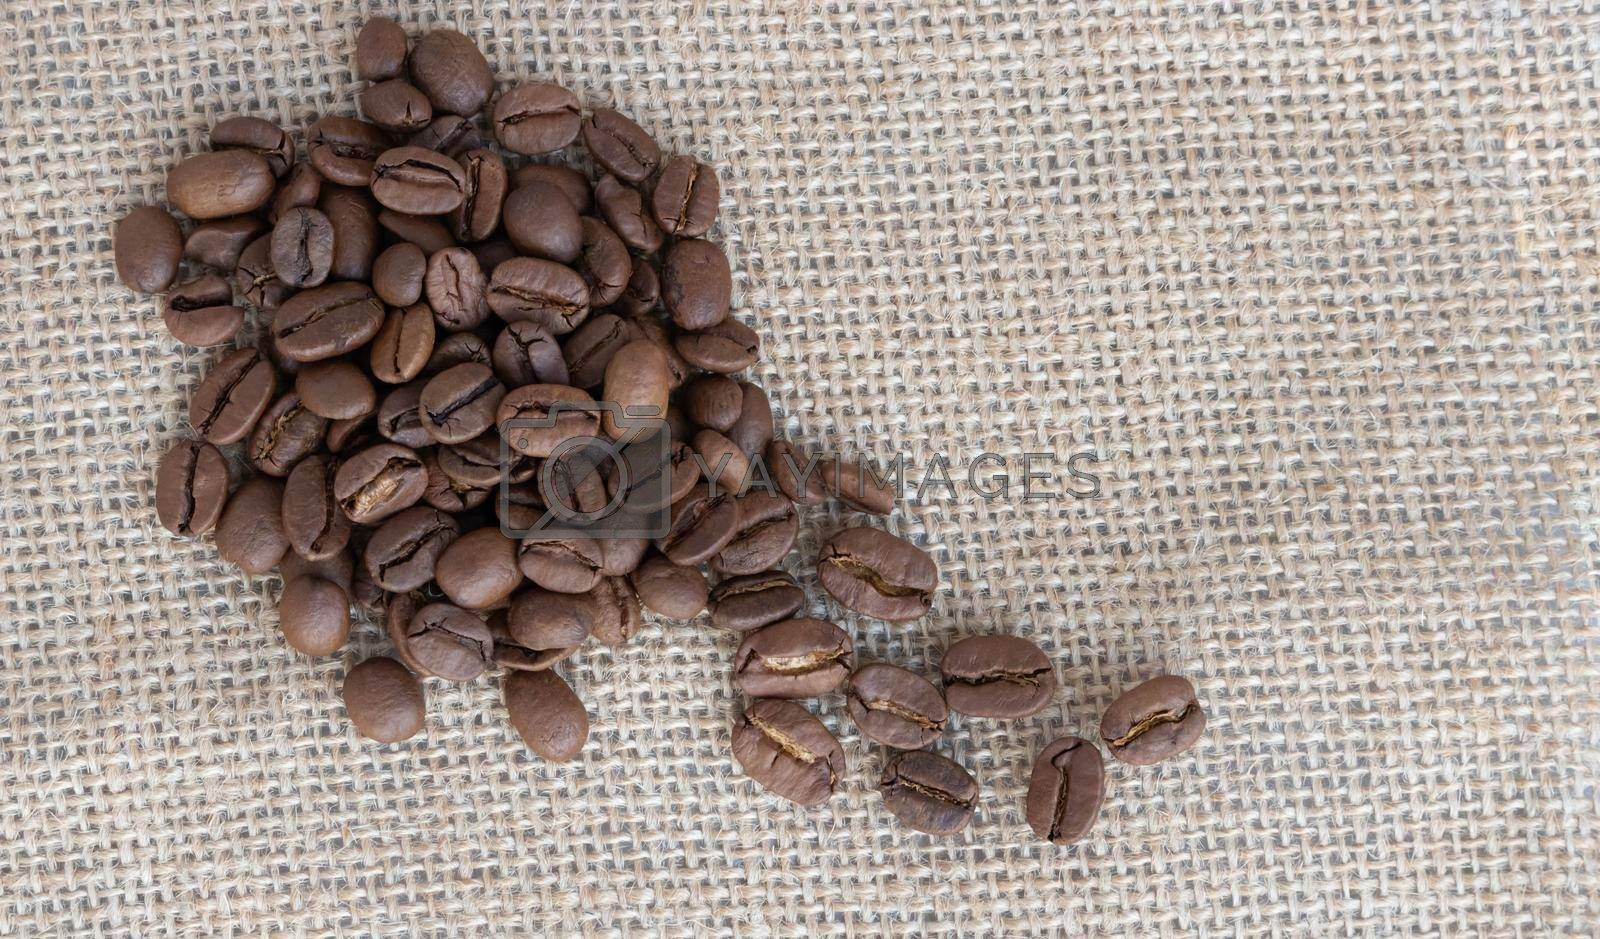 Coffee beans lie against a background of burlap. Space for text by lapushka62